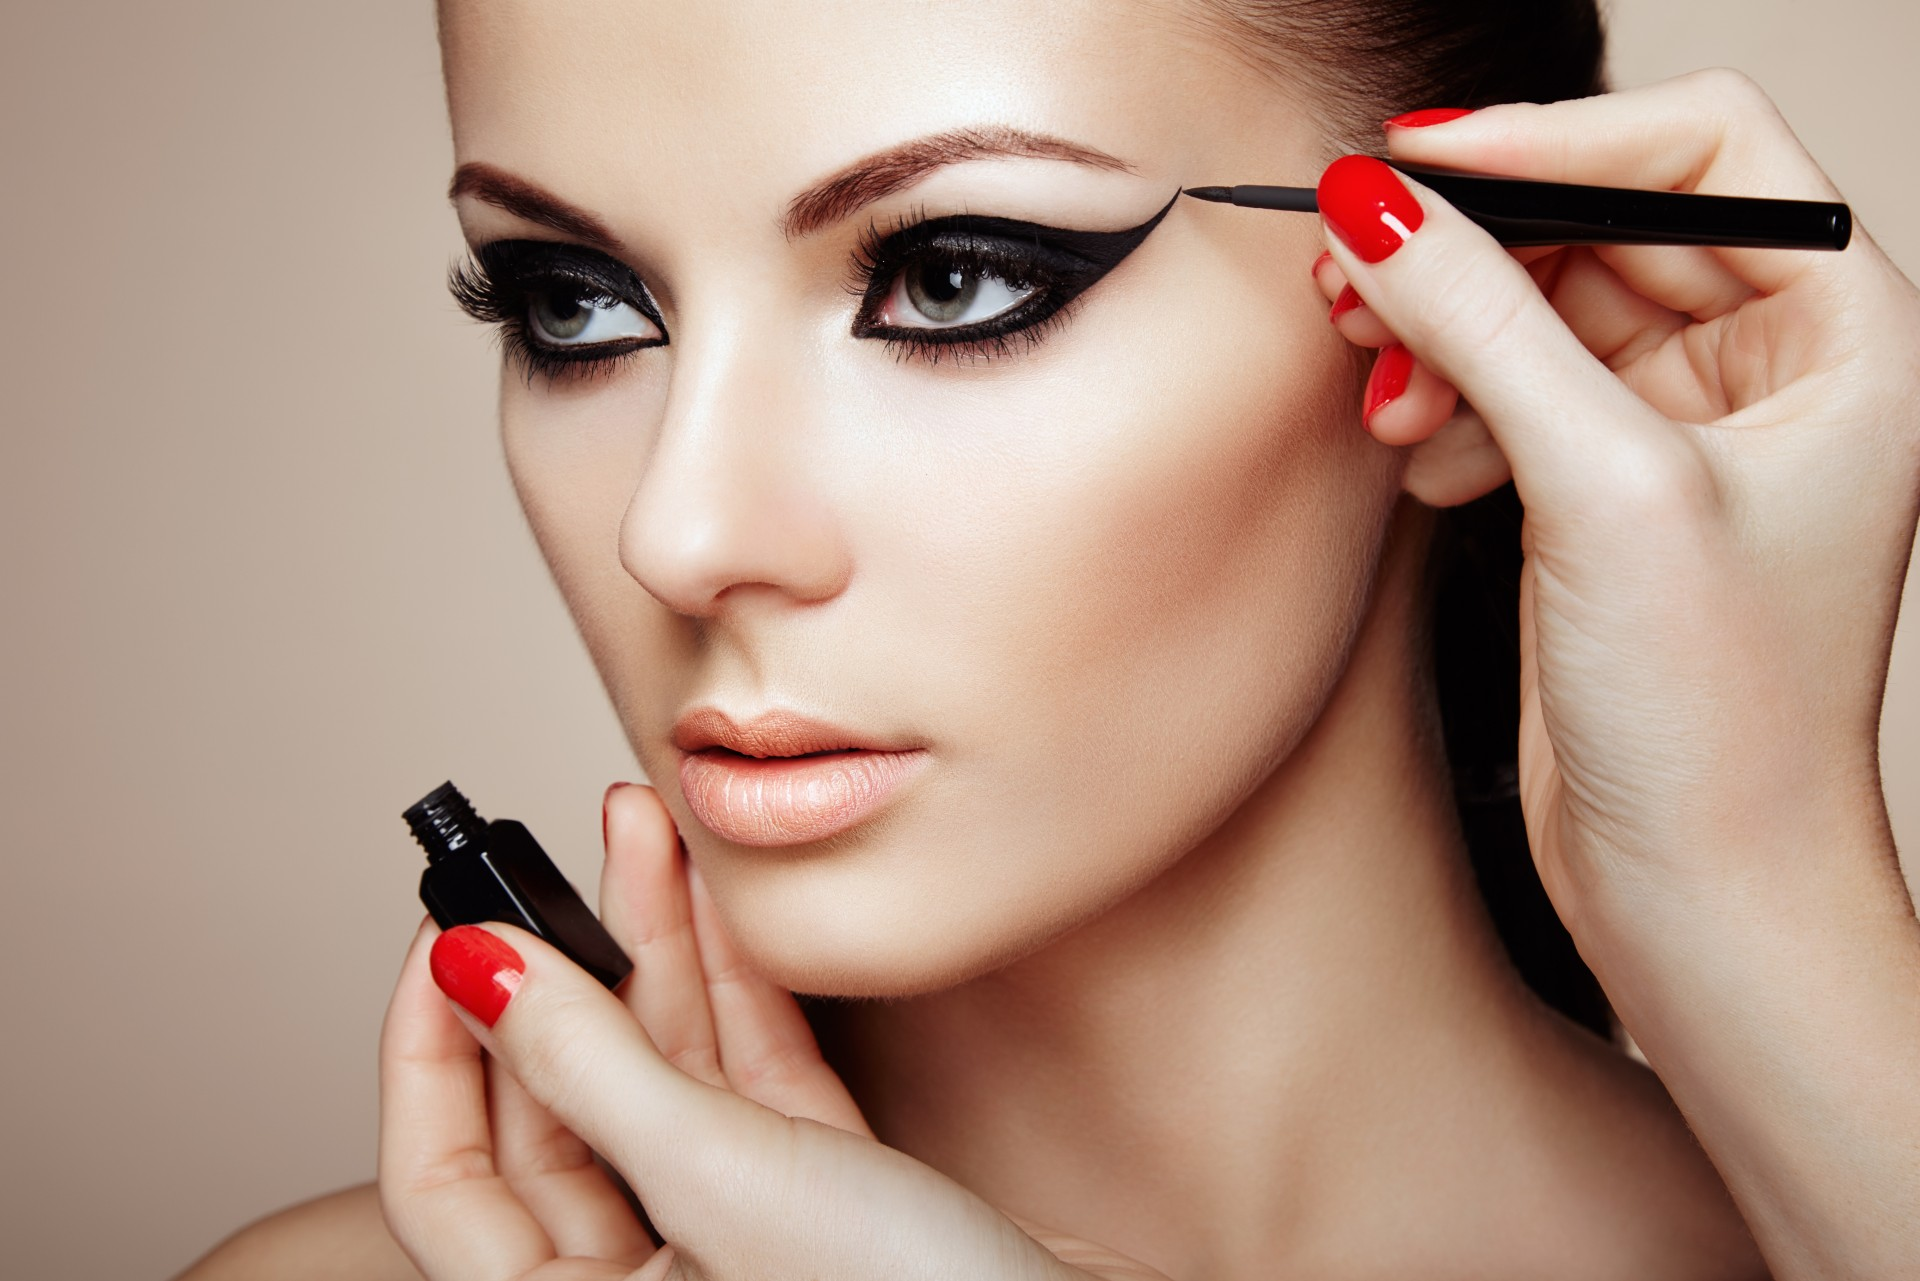 Look fierce all night. With one simple makeup hack! Source: Shutterstock